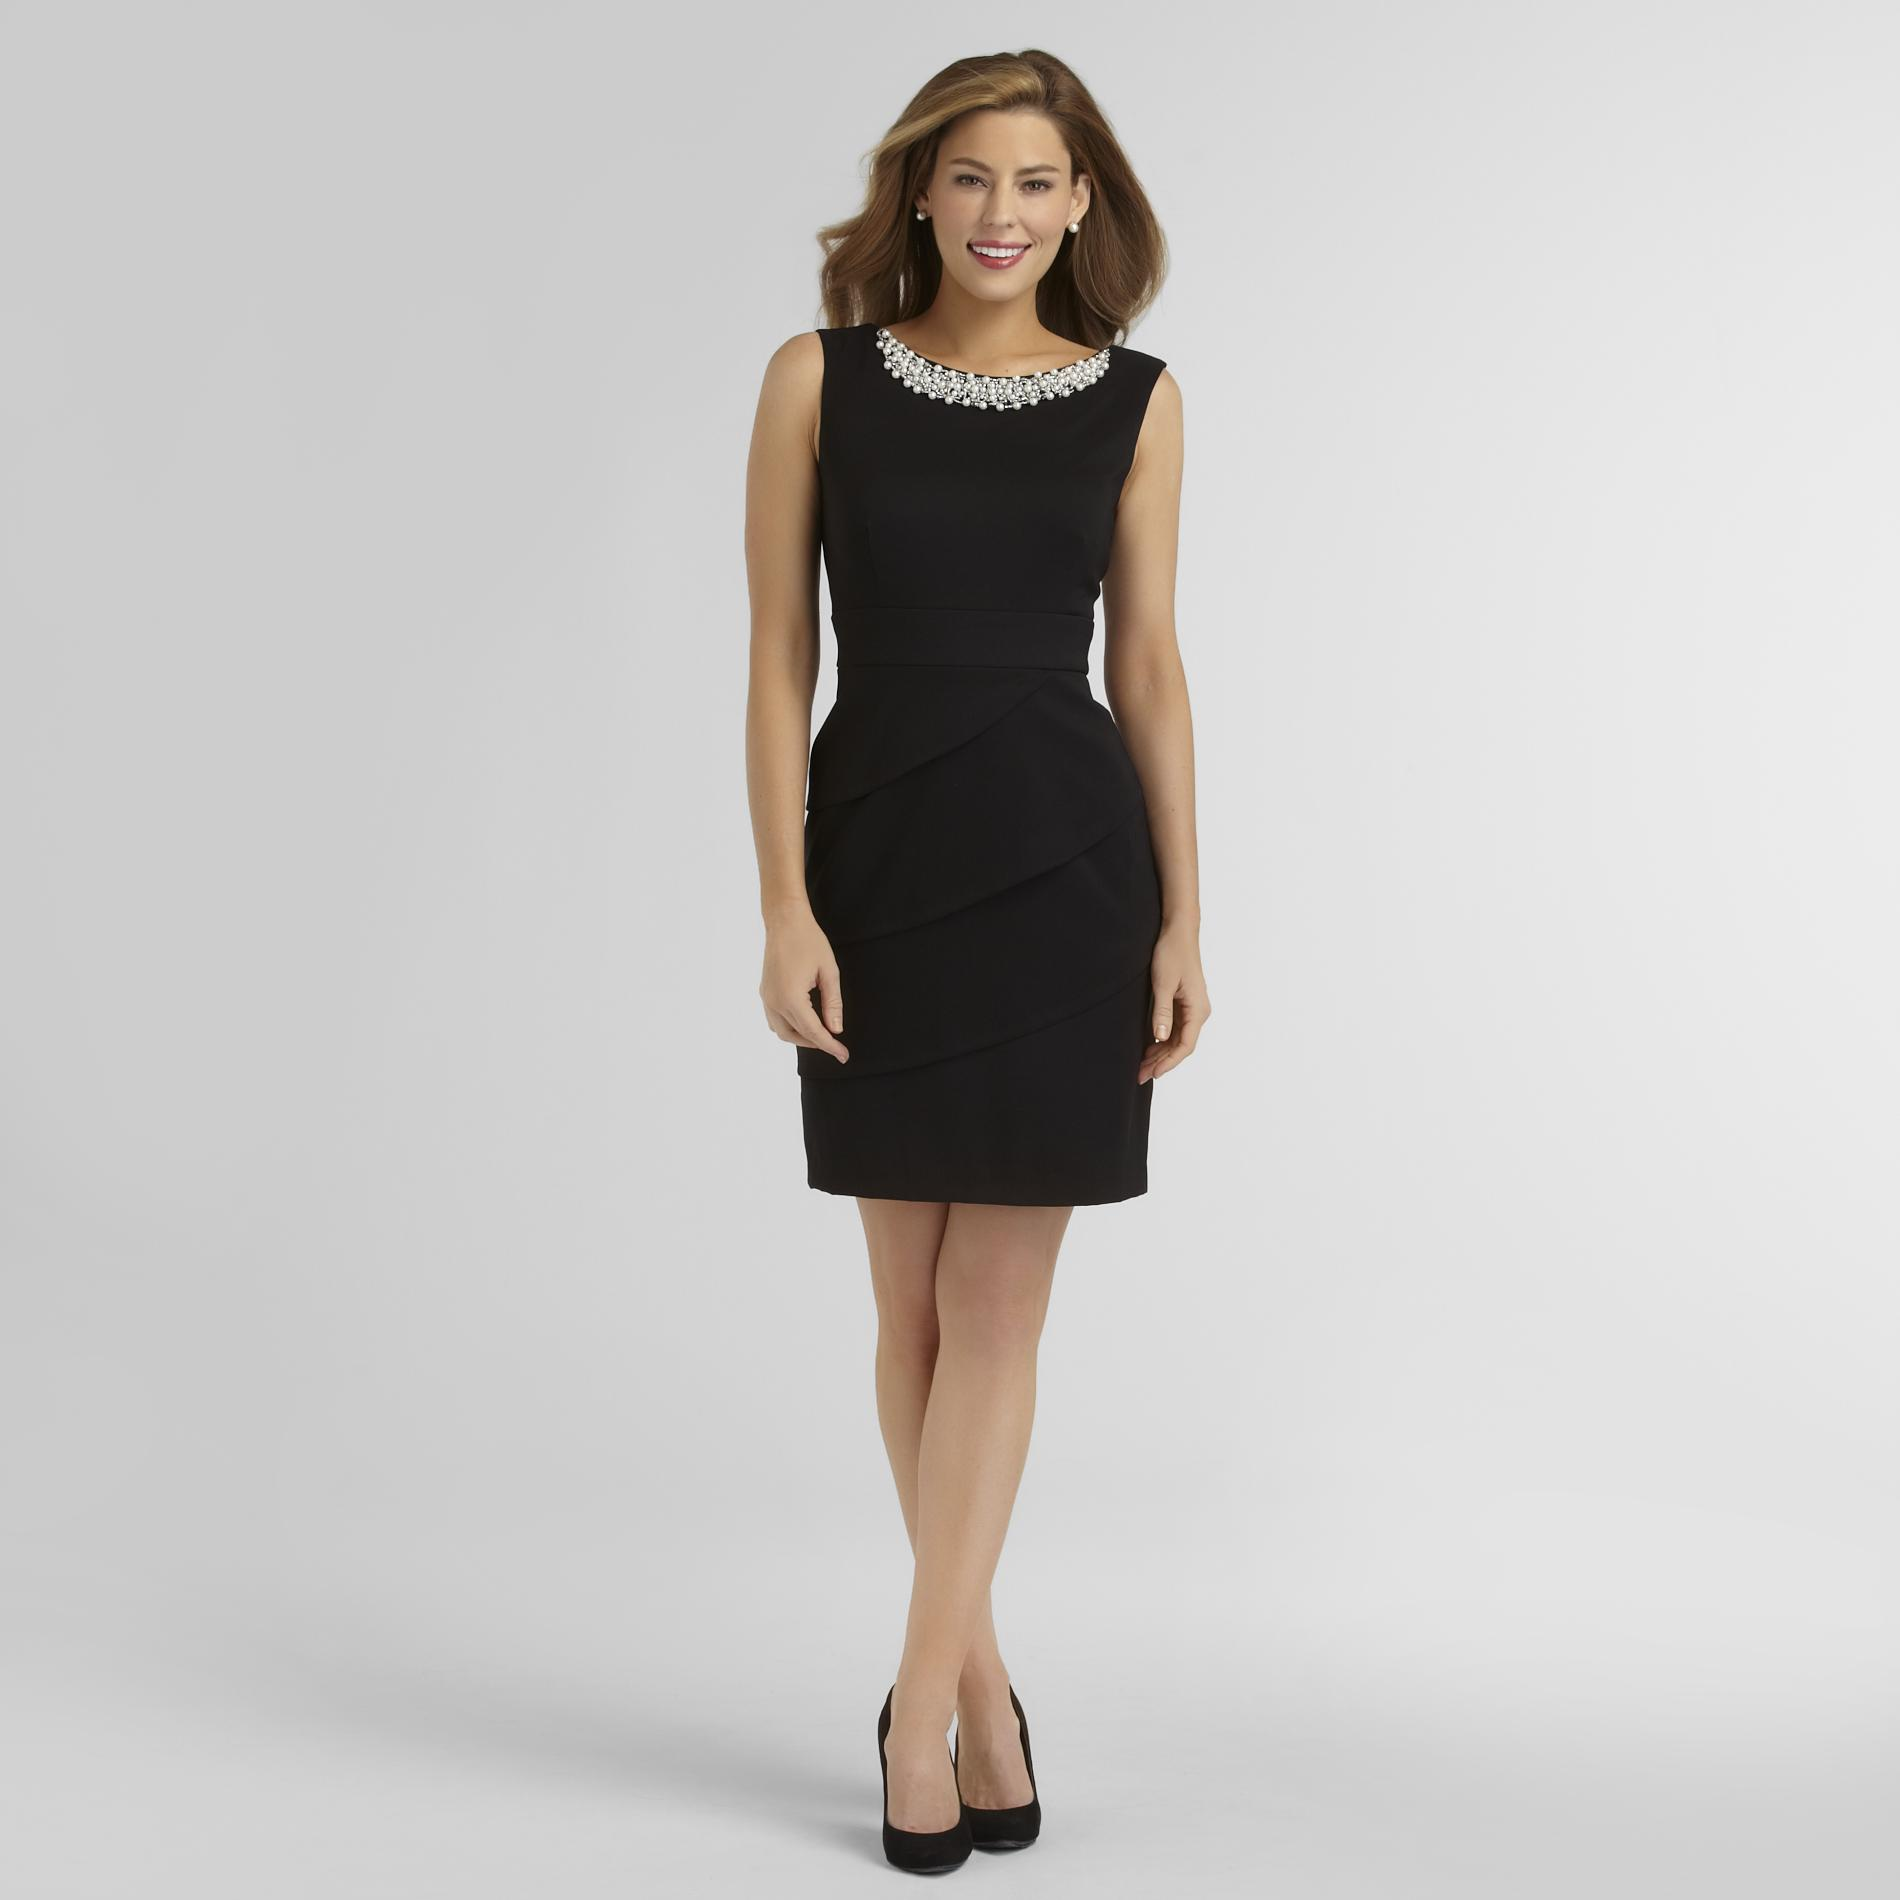 Connected Apparel Women's Sleeveless Tiered Dress - Faux Pearls at Sears.com